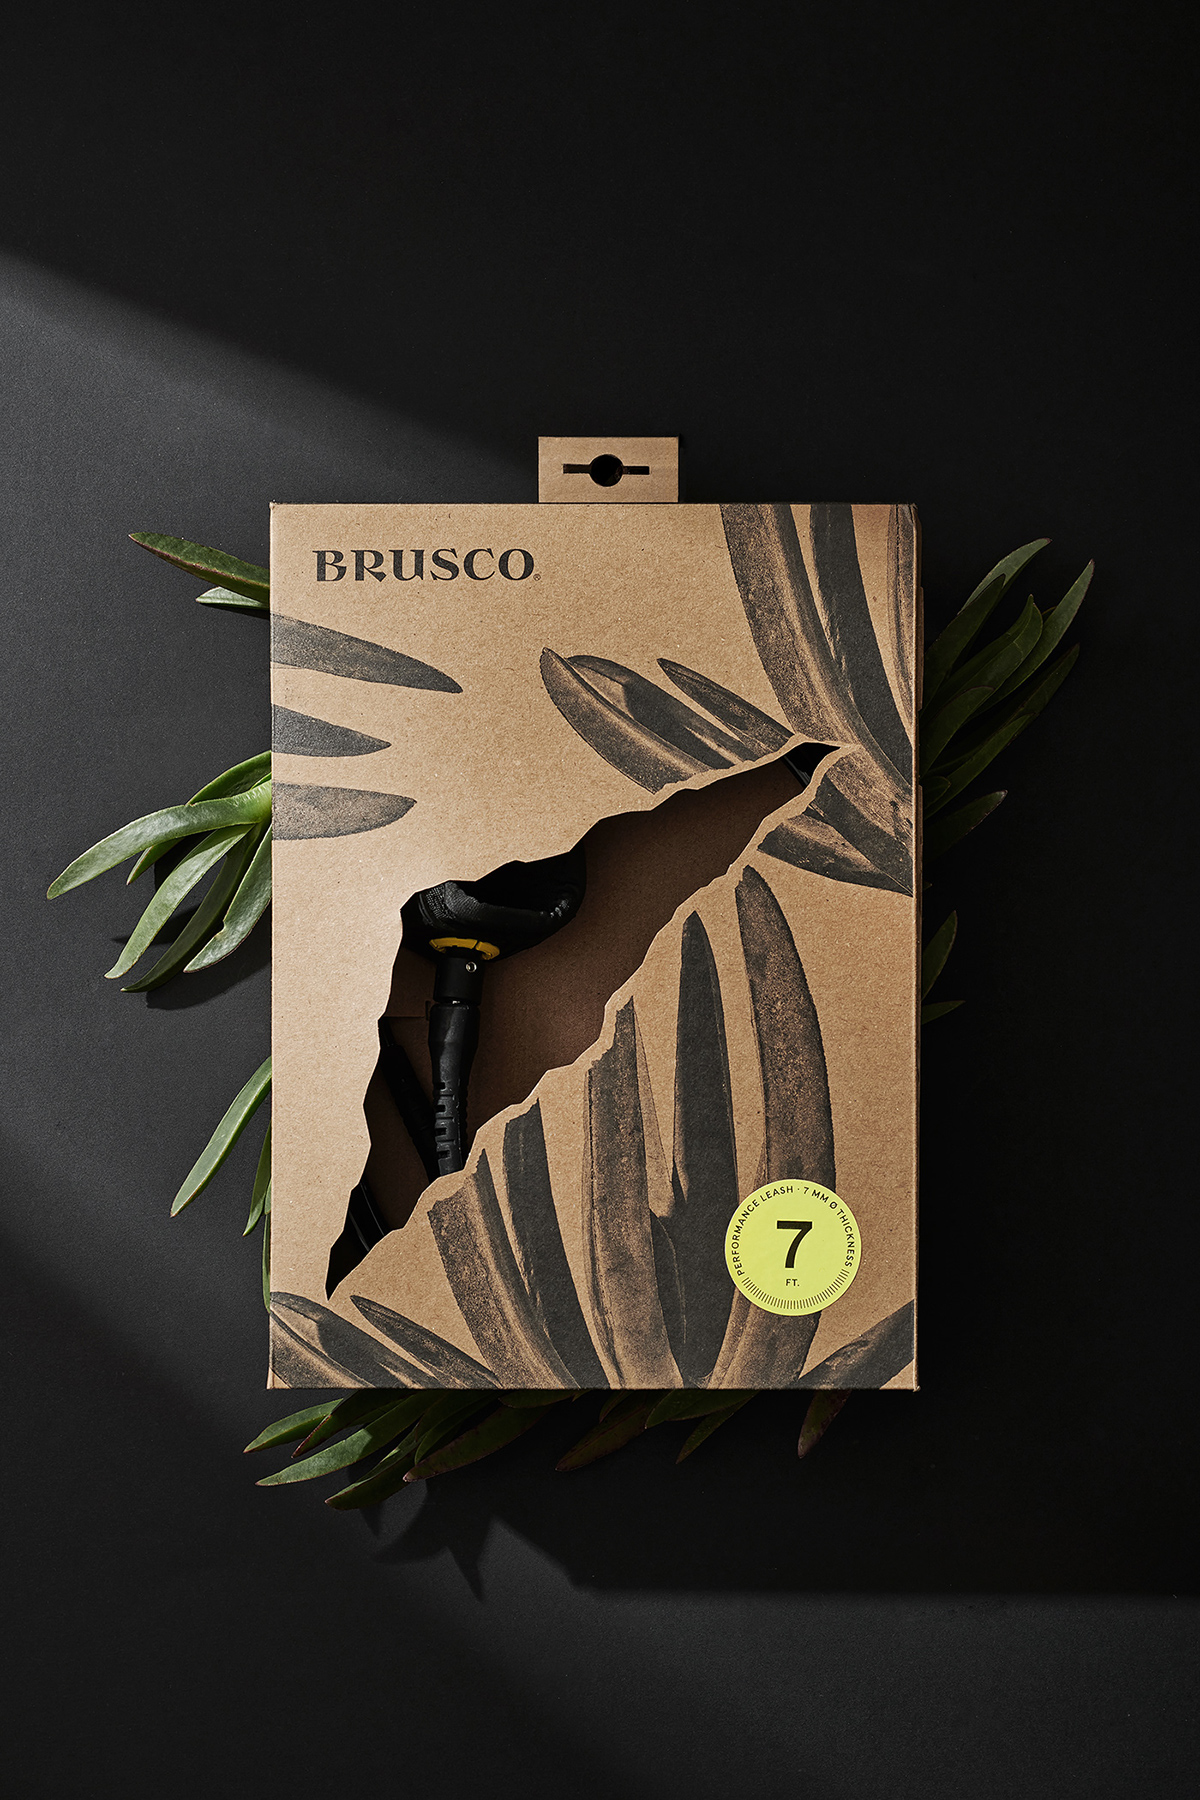 BRUSCO by Pacifica